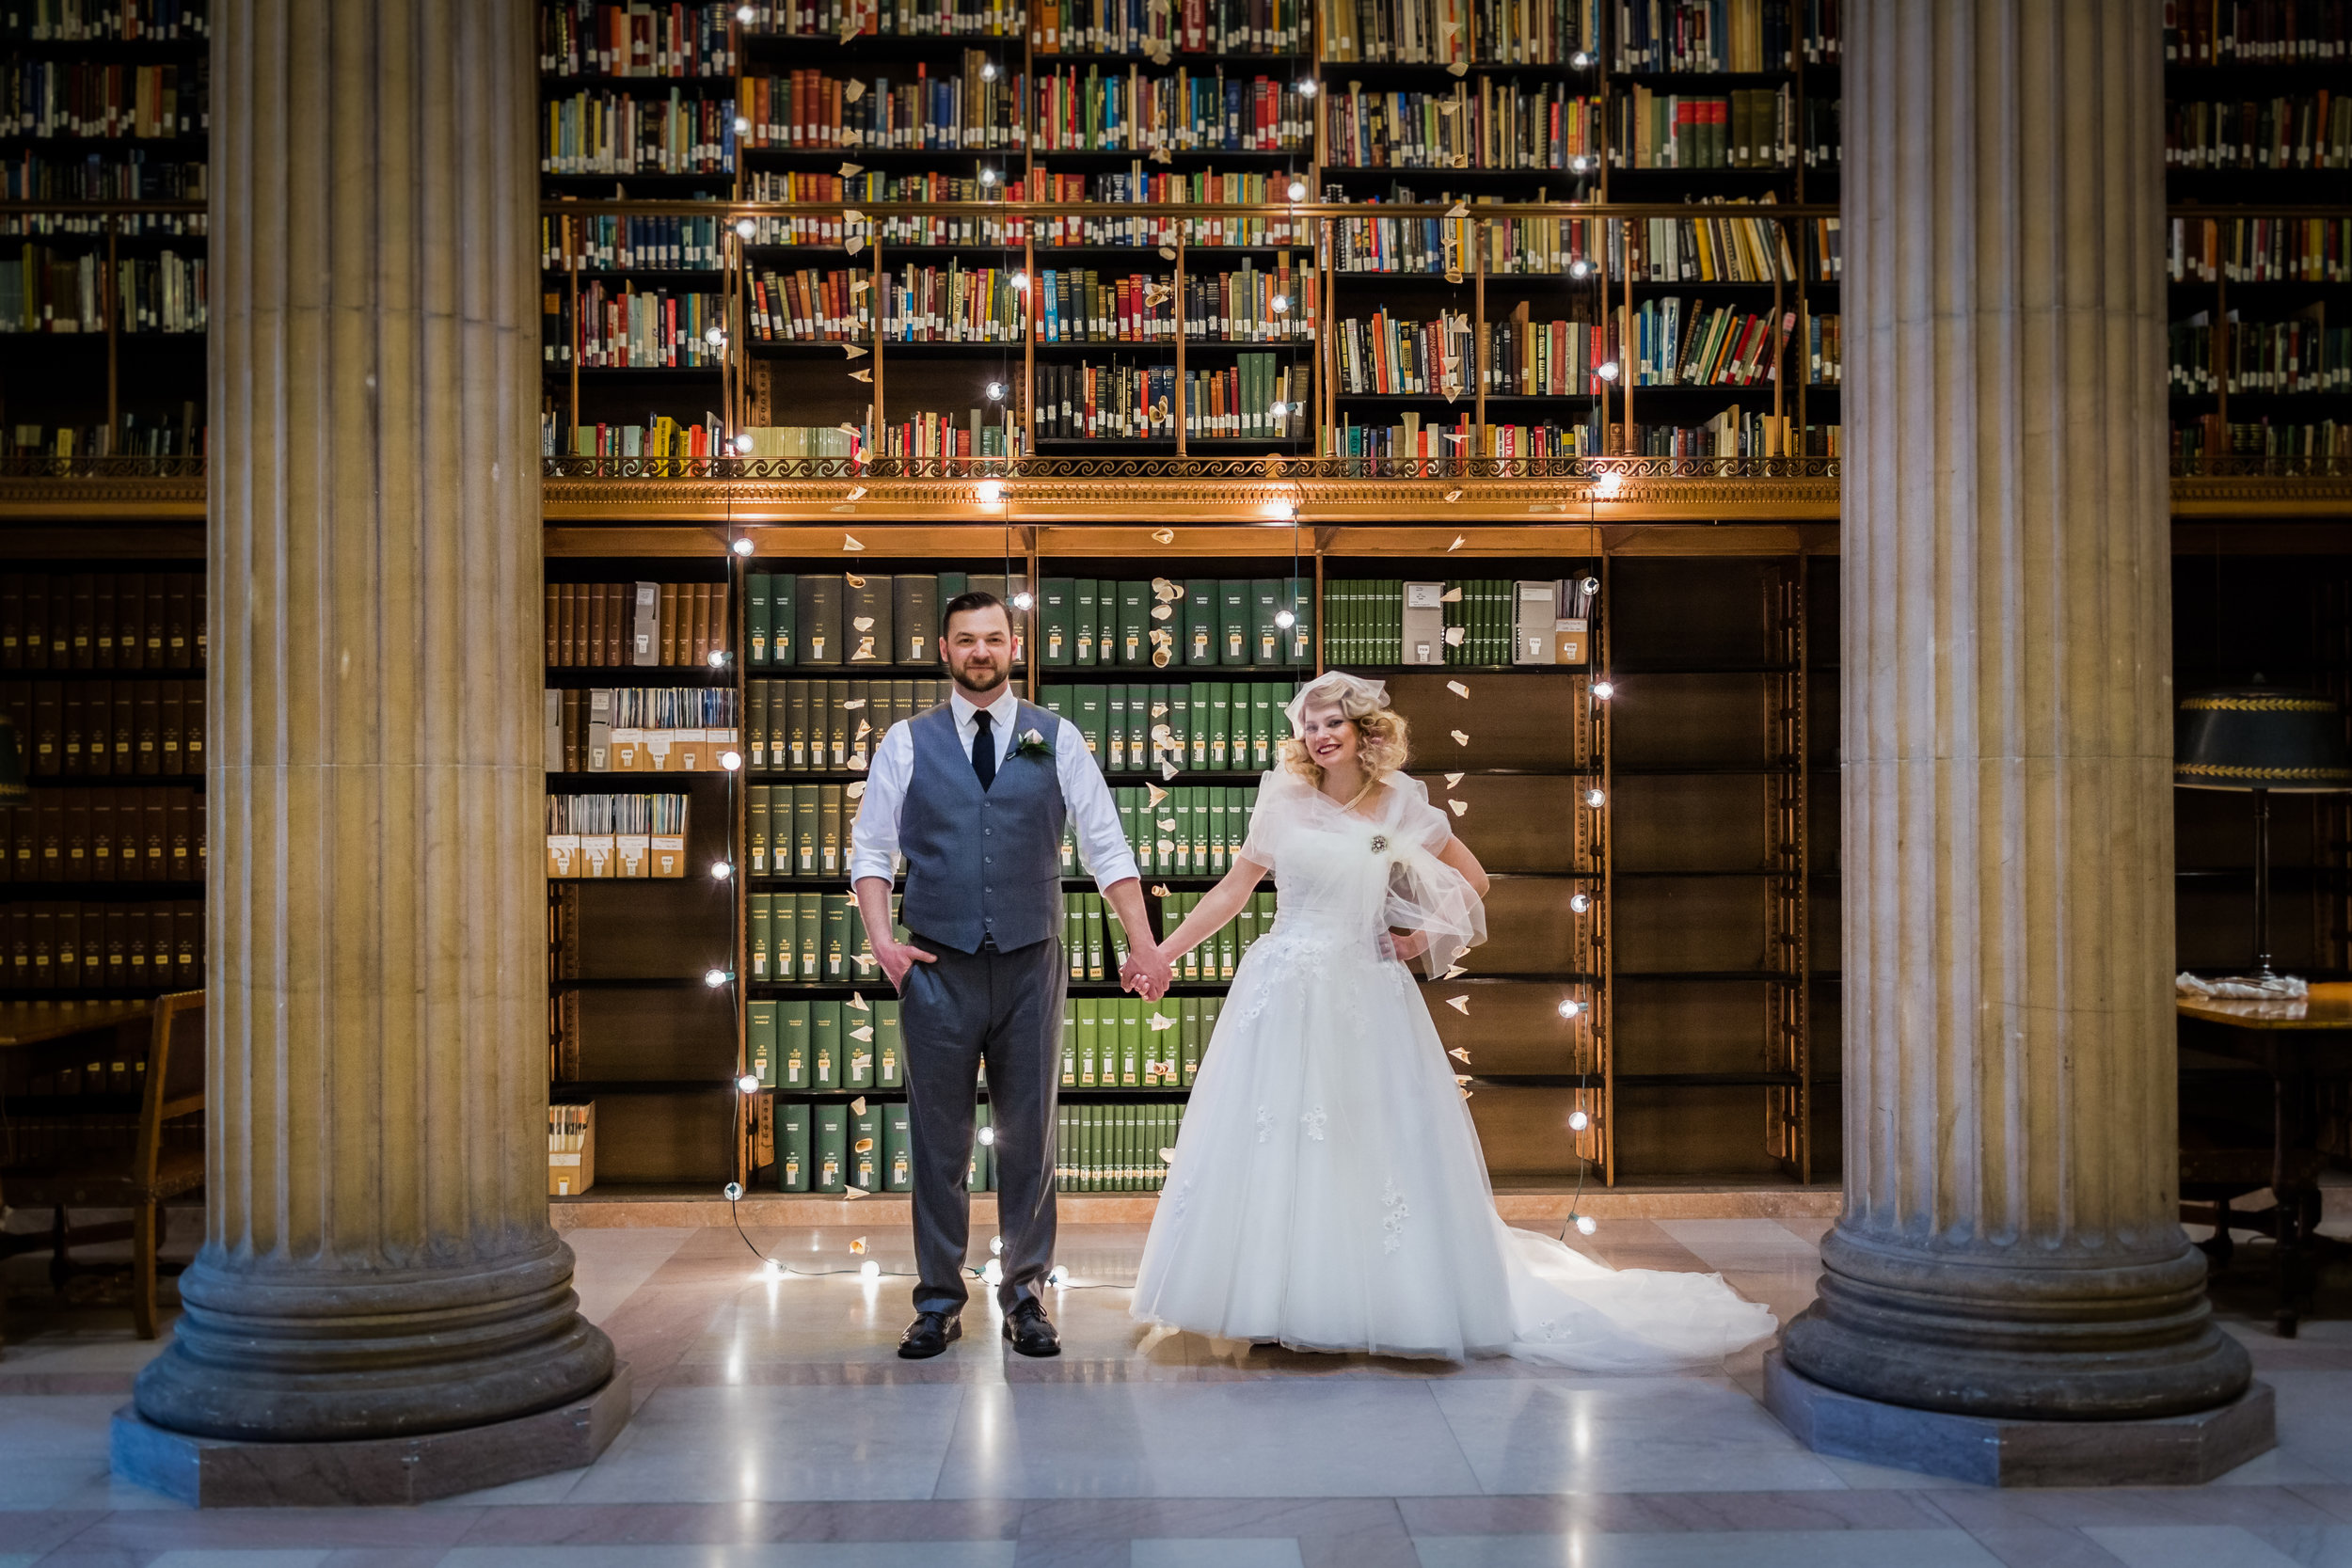 Married couple holding hands in front of cafe lighting waterfall and a bookshelf with books